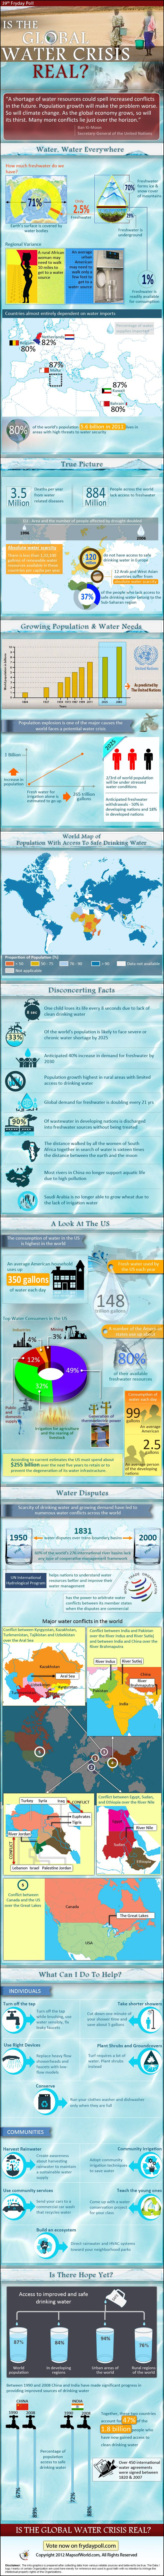 Infographic - Is The Global Water Crisis Real?